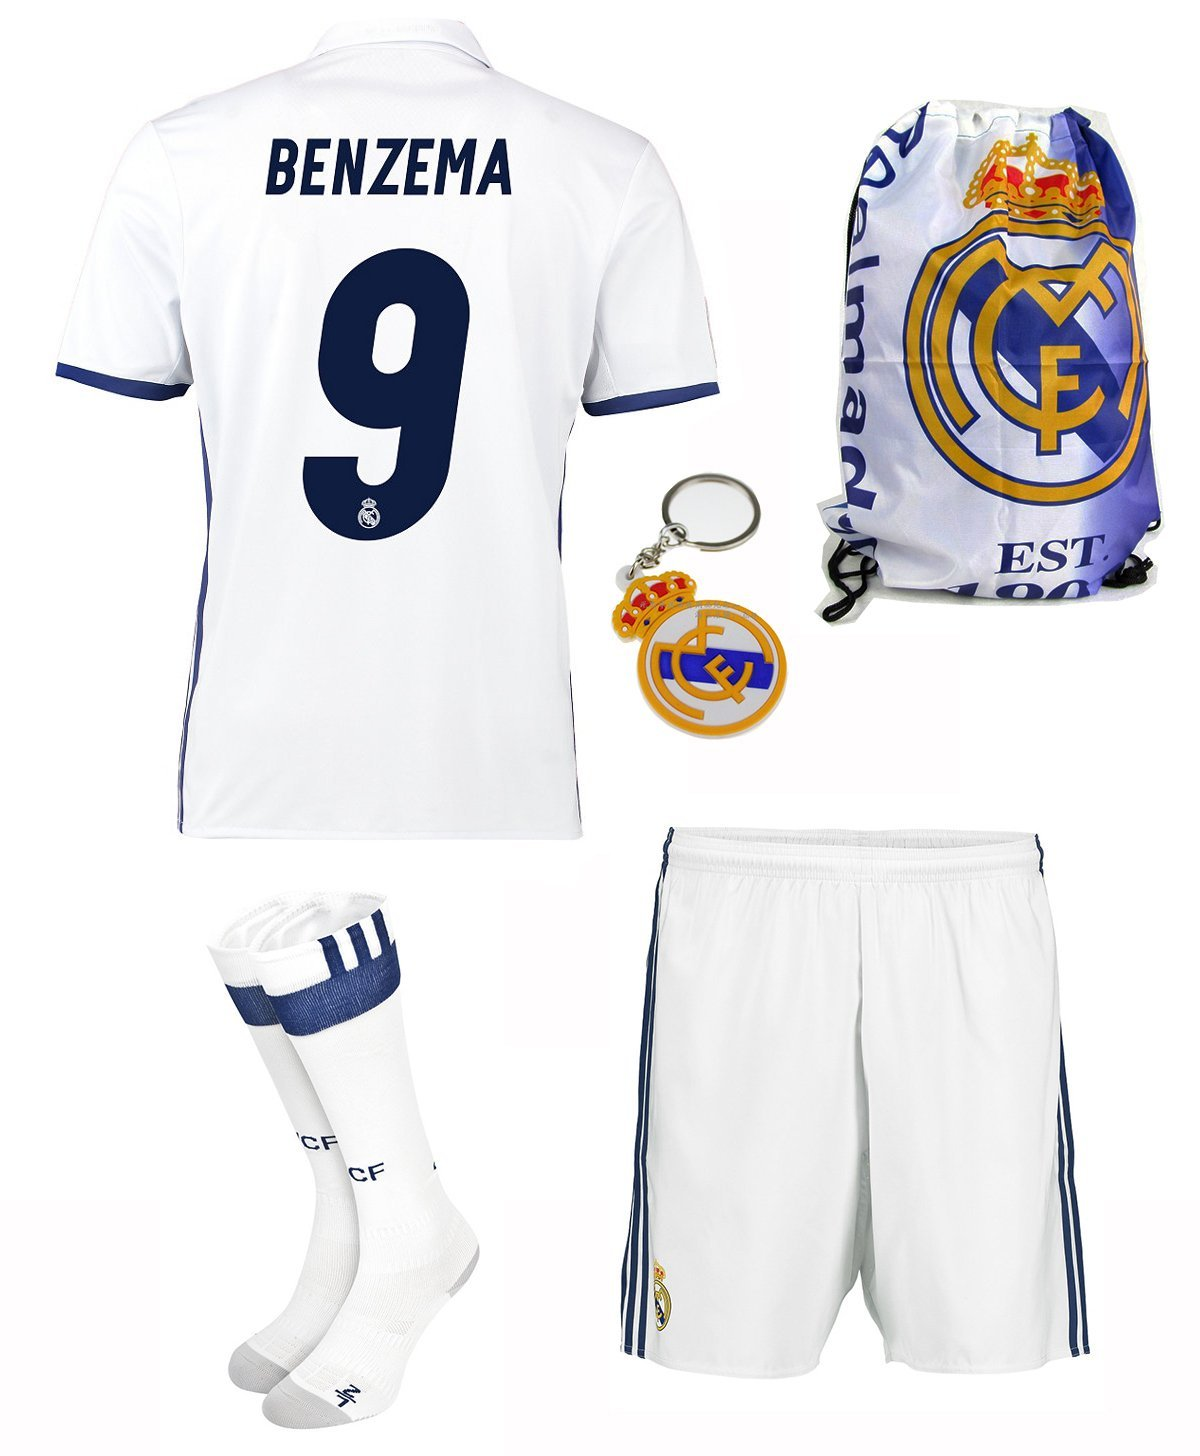 8edd5fe03 Get Quotations · KIDBOX 2016 2017 Real Madrid  9 benzema Home Soccer  Football Jersey Sportswear Team Polo